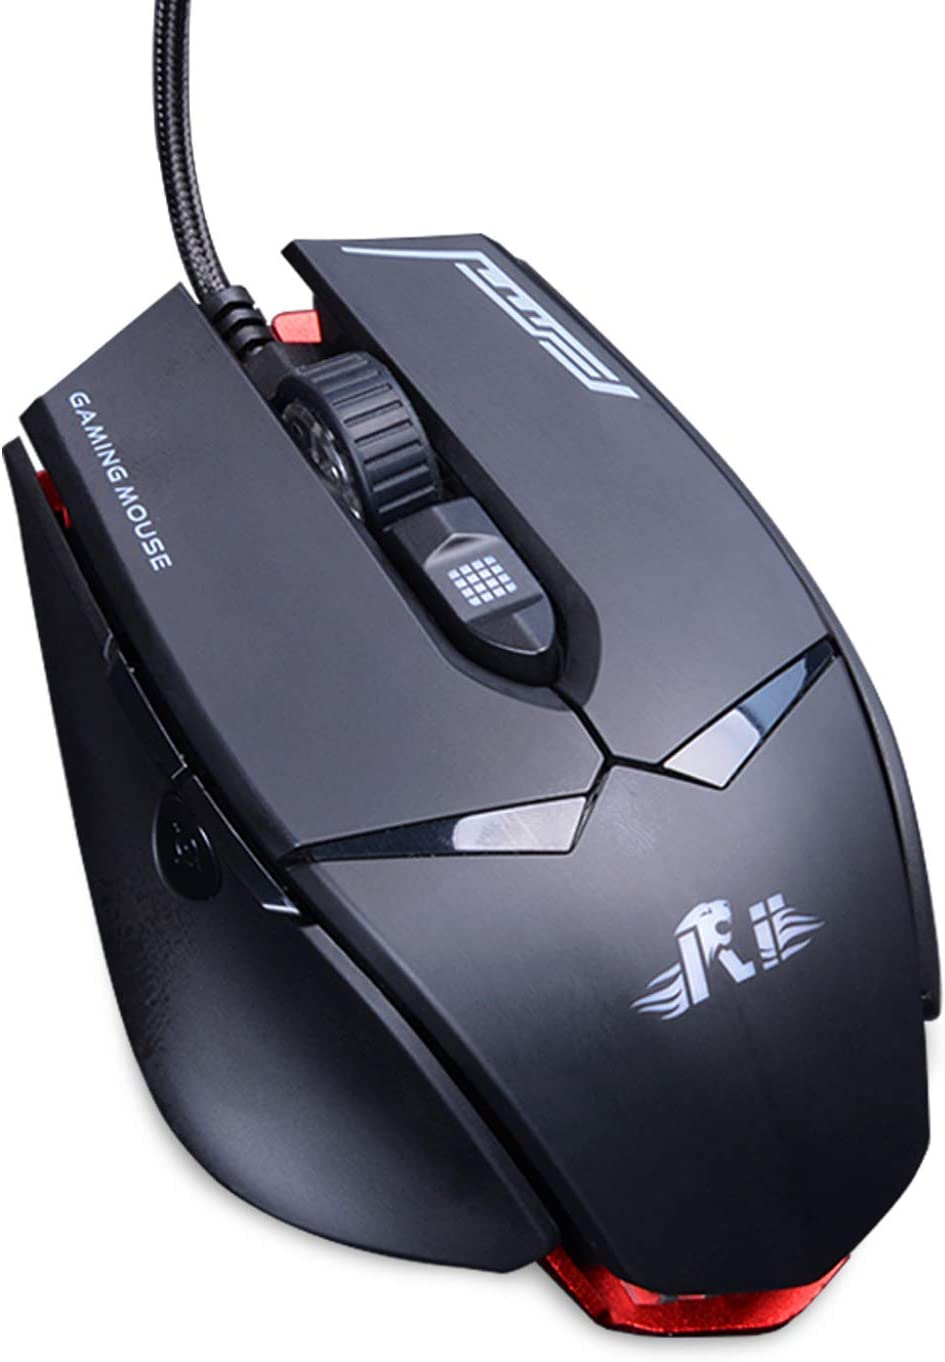 Gaming Mouse,Rii M01 USB Wired Gaming Mouse with Red Led,12,000 Adjustible DPI,Optical Sensor Pixart PMW3360 for PC,Gaming,Office